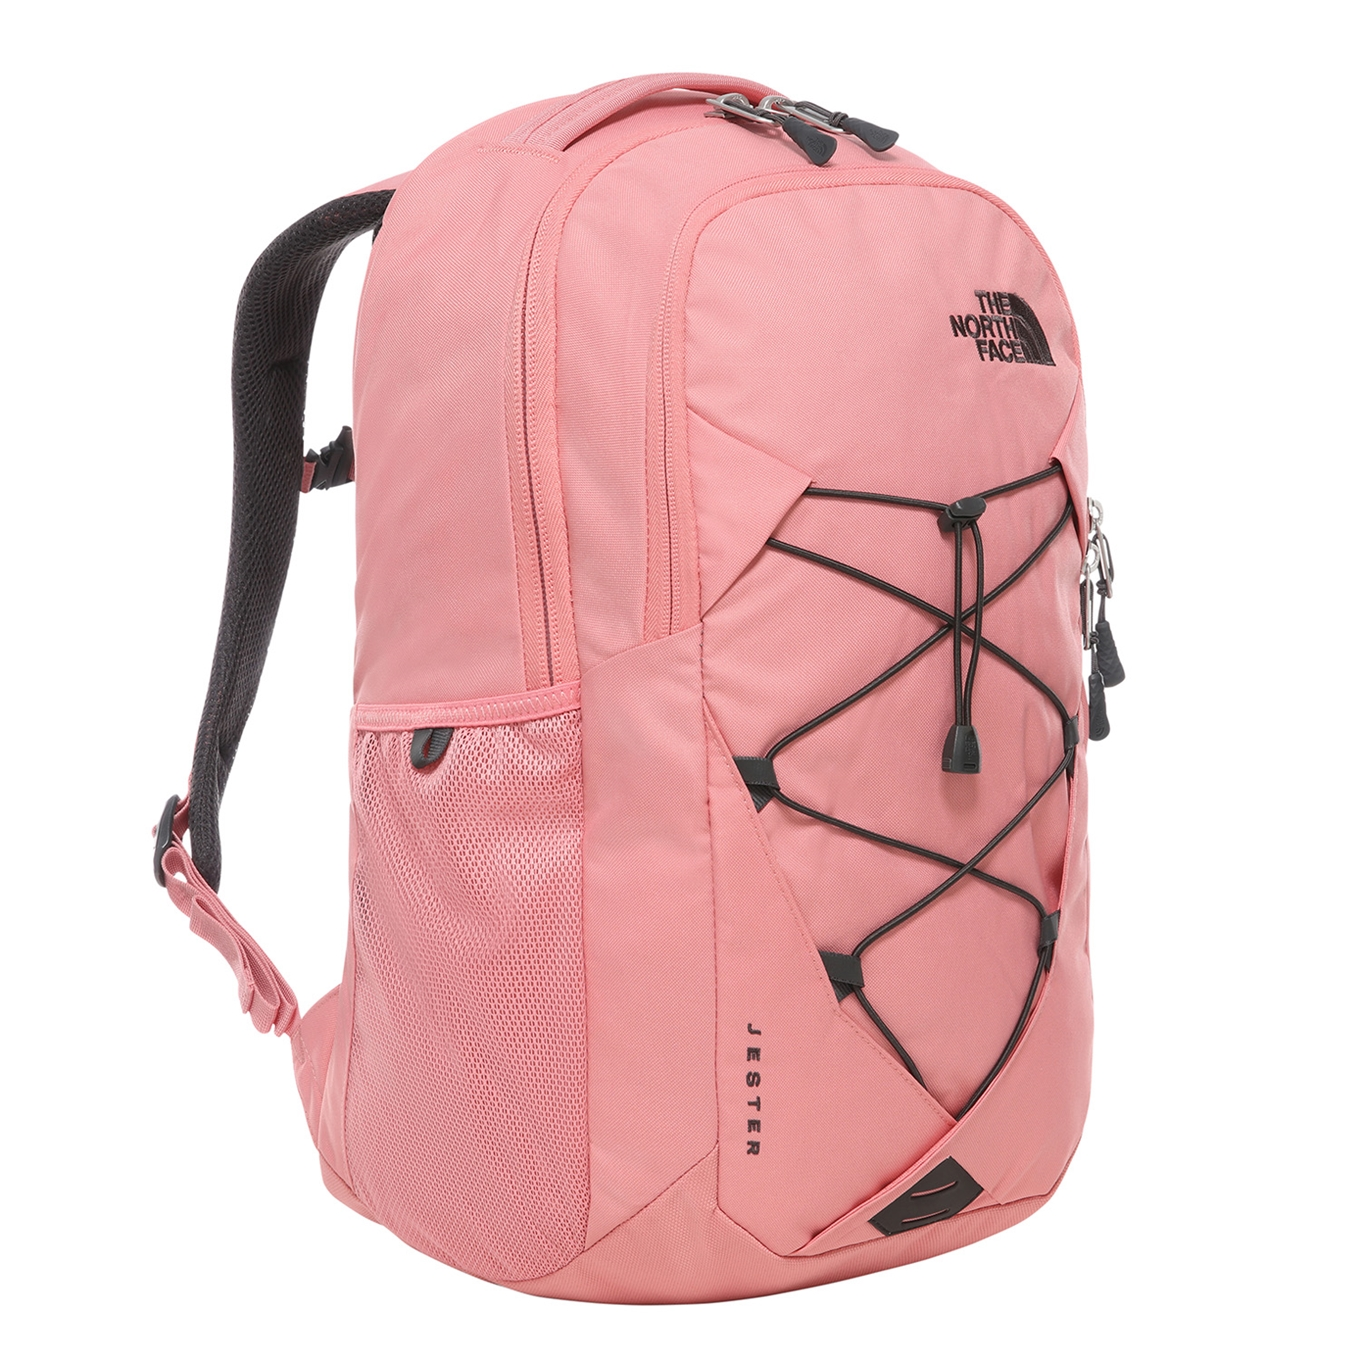 The North Face Womens Jester Backpack mauve glow / asphalt grey backpack